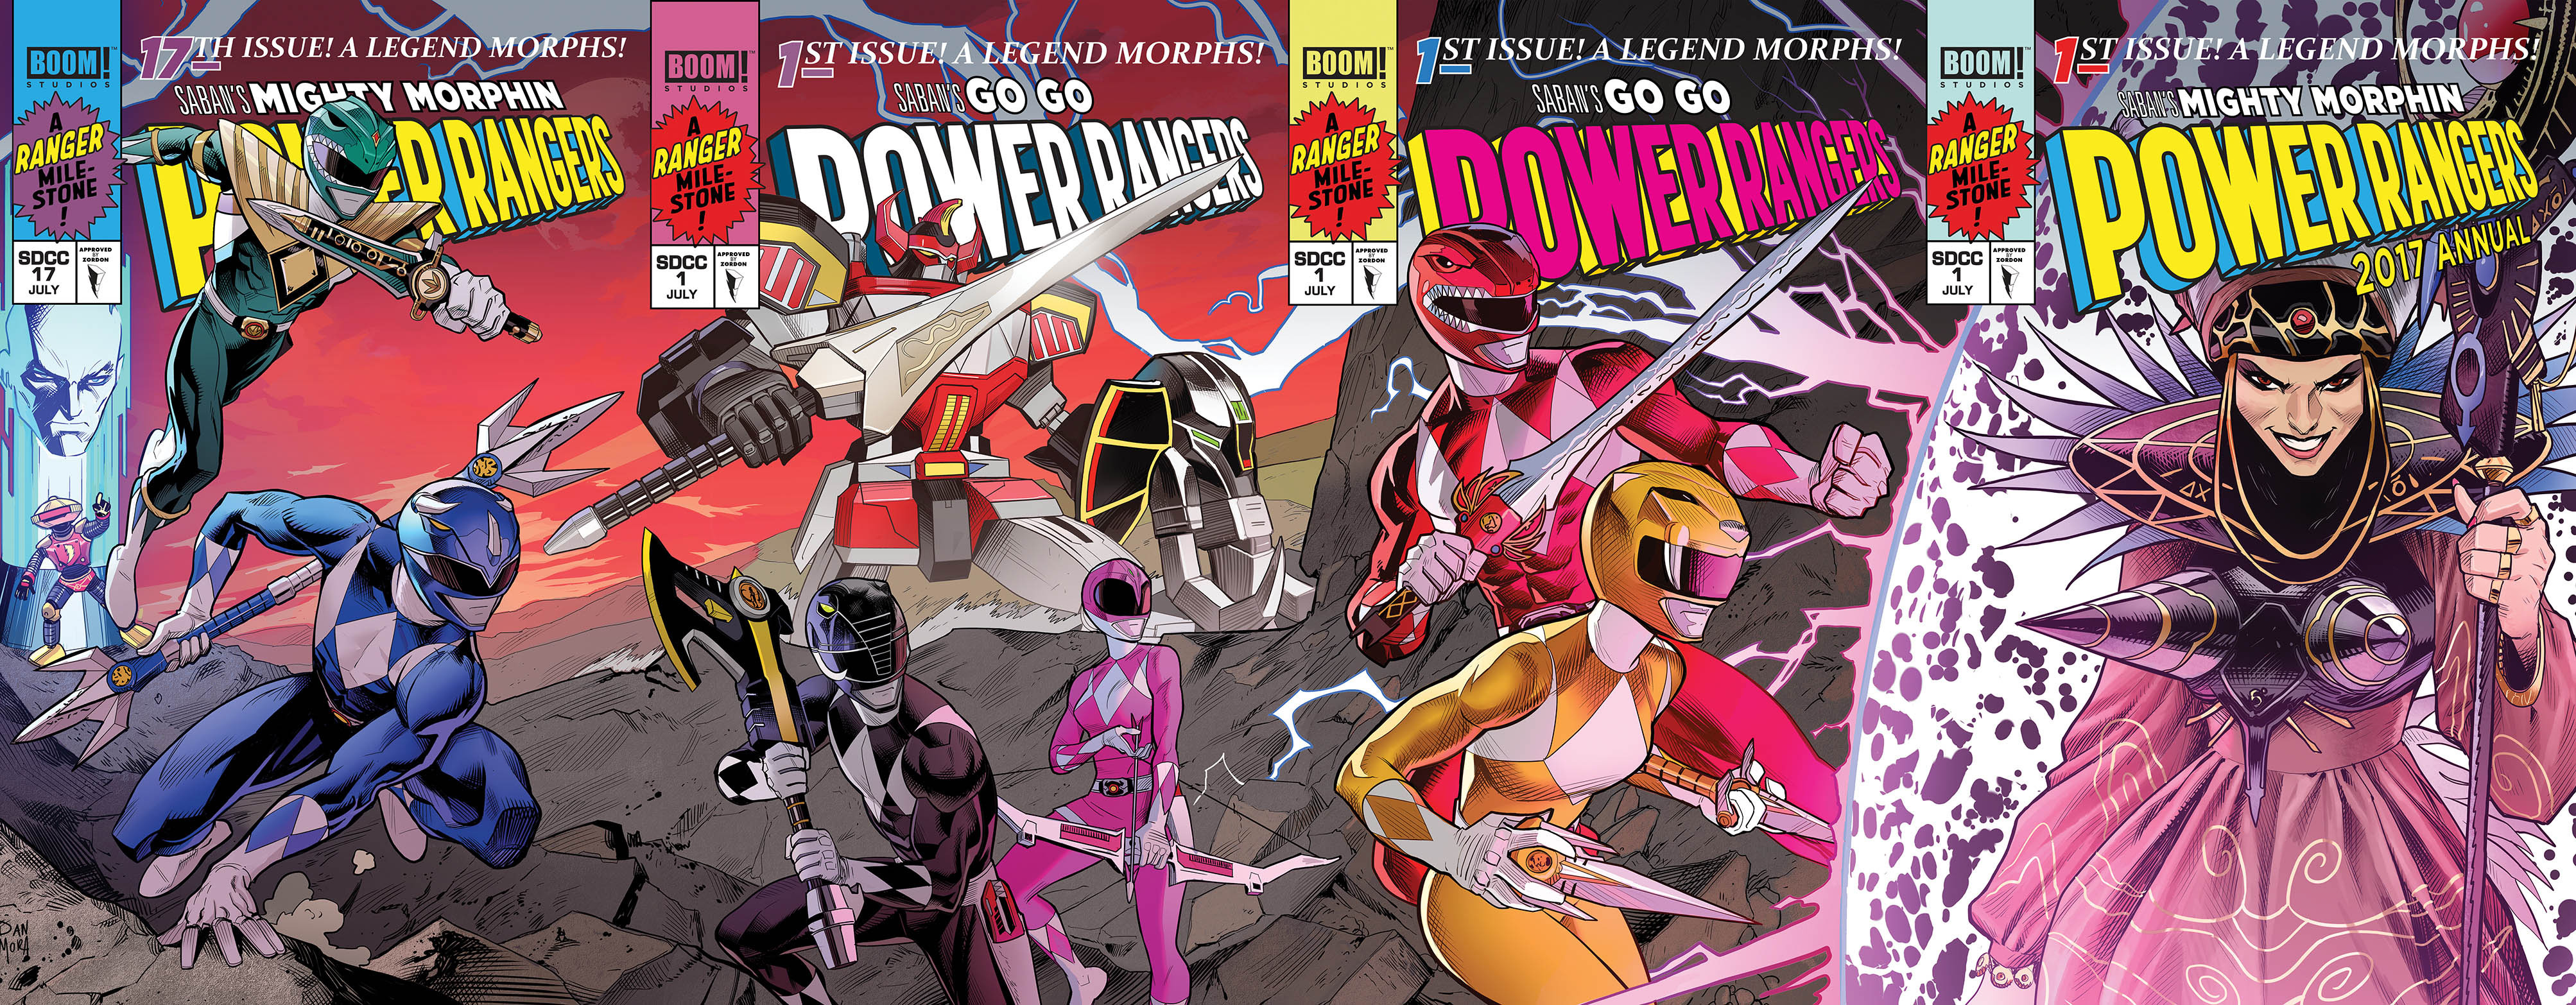 Special Variant Cover Versions Of The Issue Were Given Out At Sdcc  Which If Combined With  Other Comics Sold At The Event Would Form A Gatefold